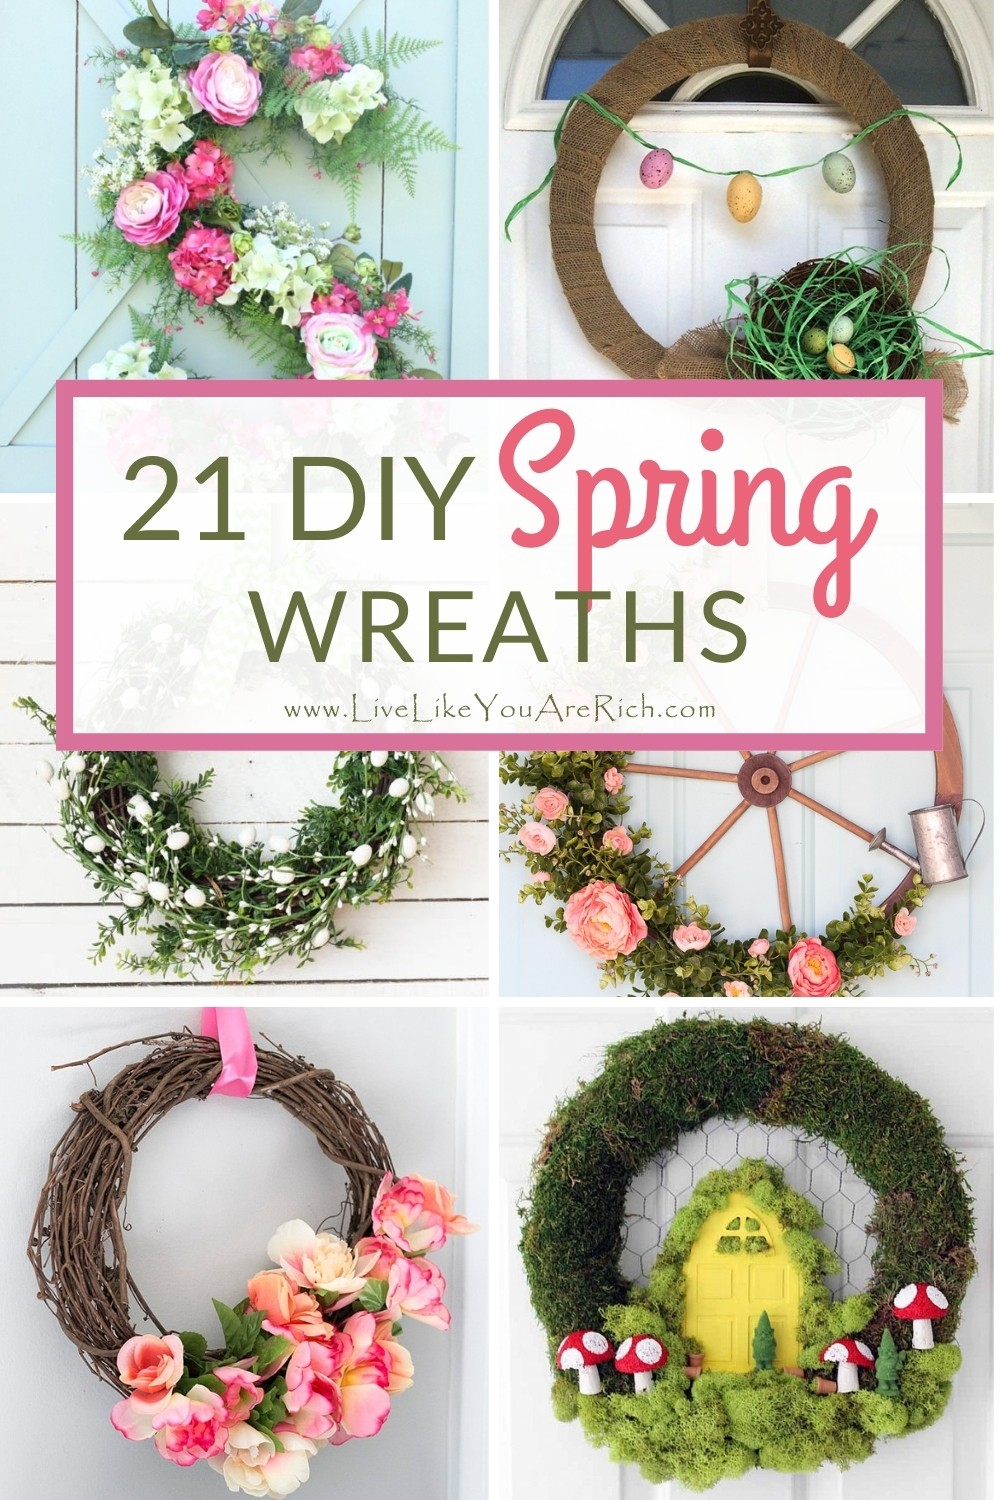 I love Spring! Spring is finally here and I couldn't be more excited. Here are 21 easy  Spring wreath ideas you can make to add instant charm to your home.